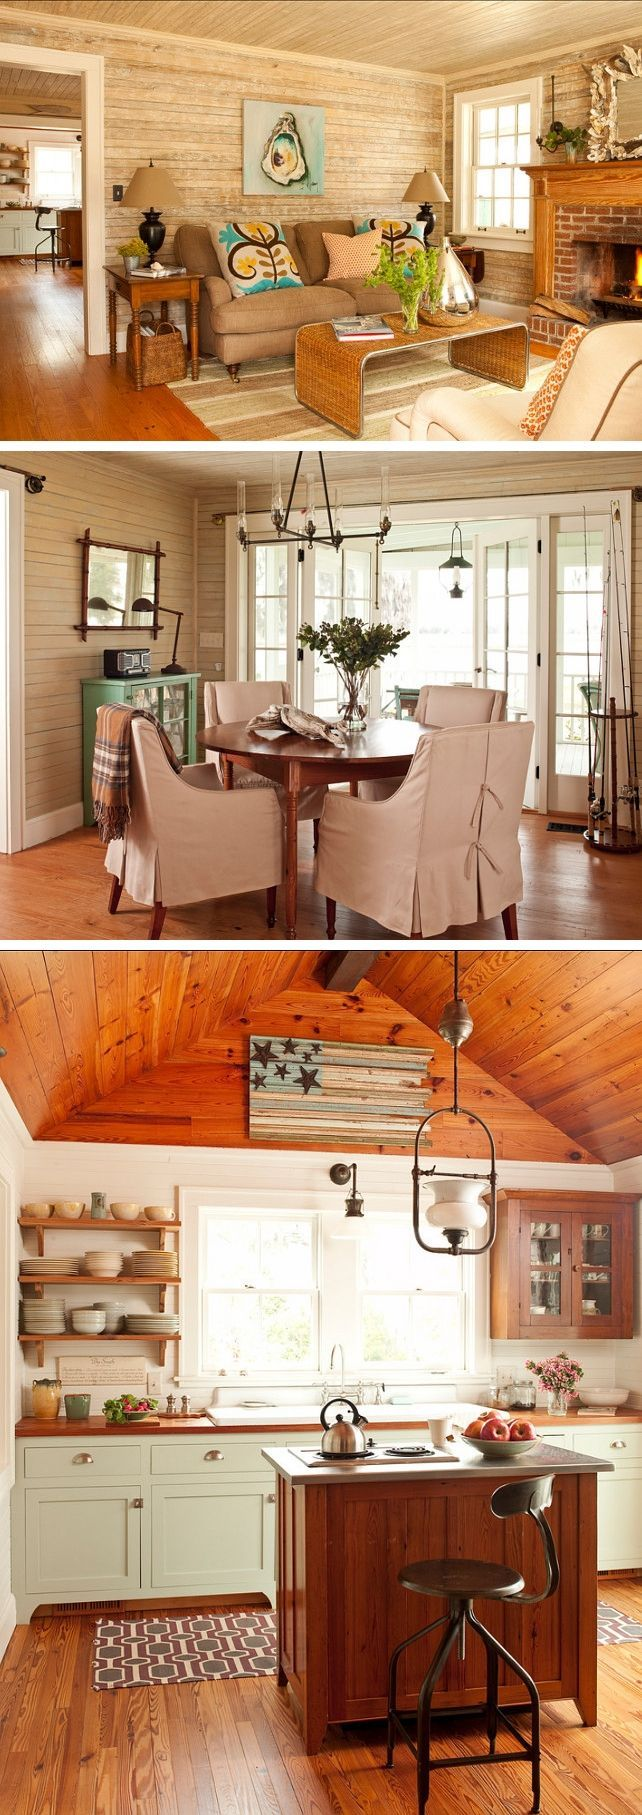 Restored Southern Cottage Living Room Dining Kitchen This Little